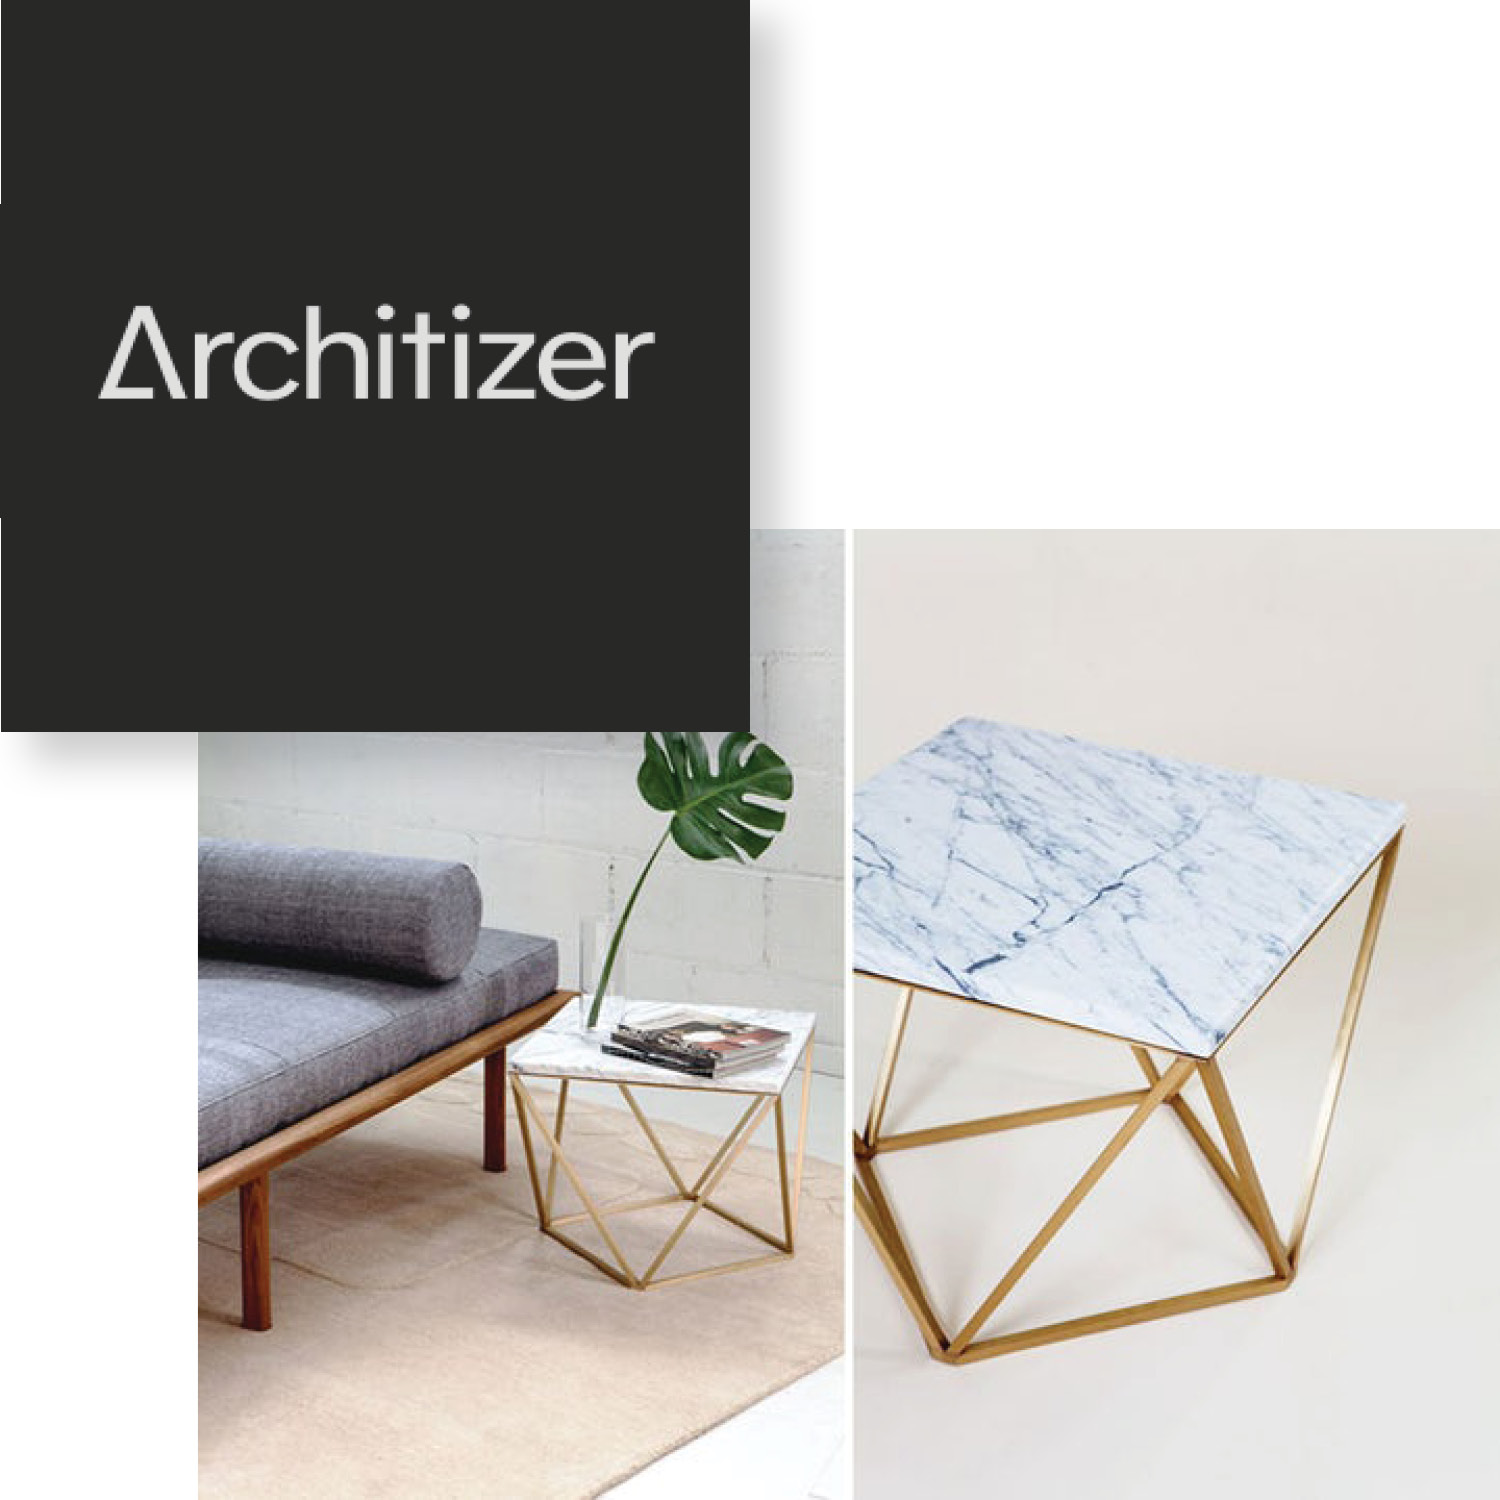 Architizer, May 2016